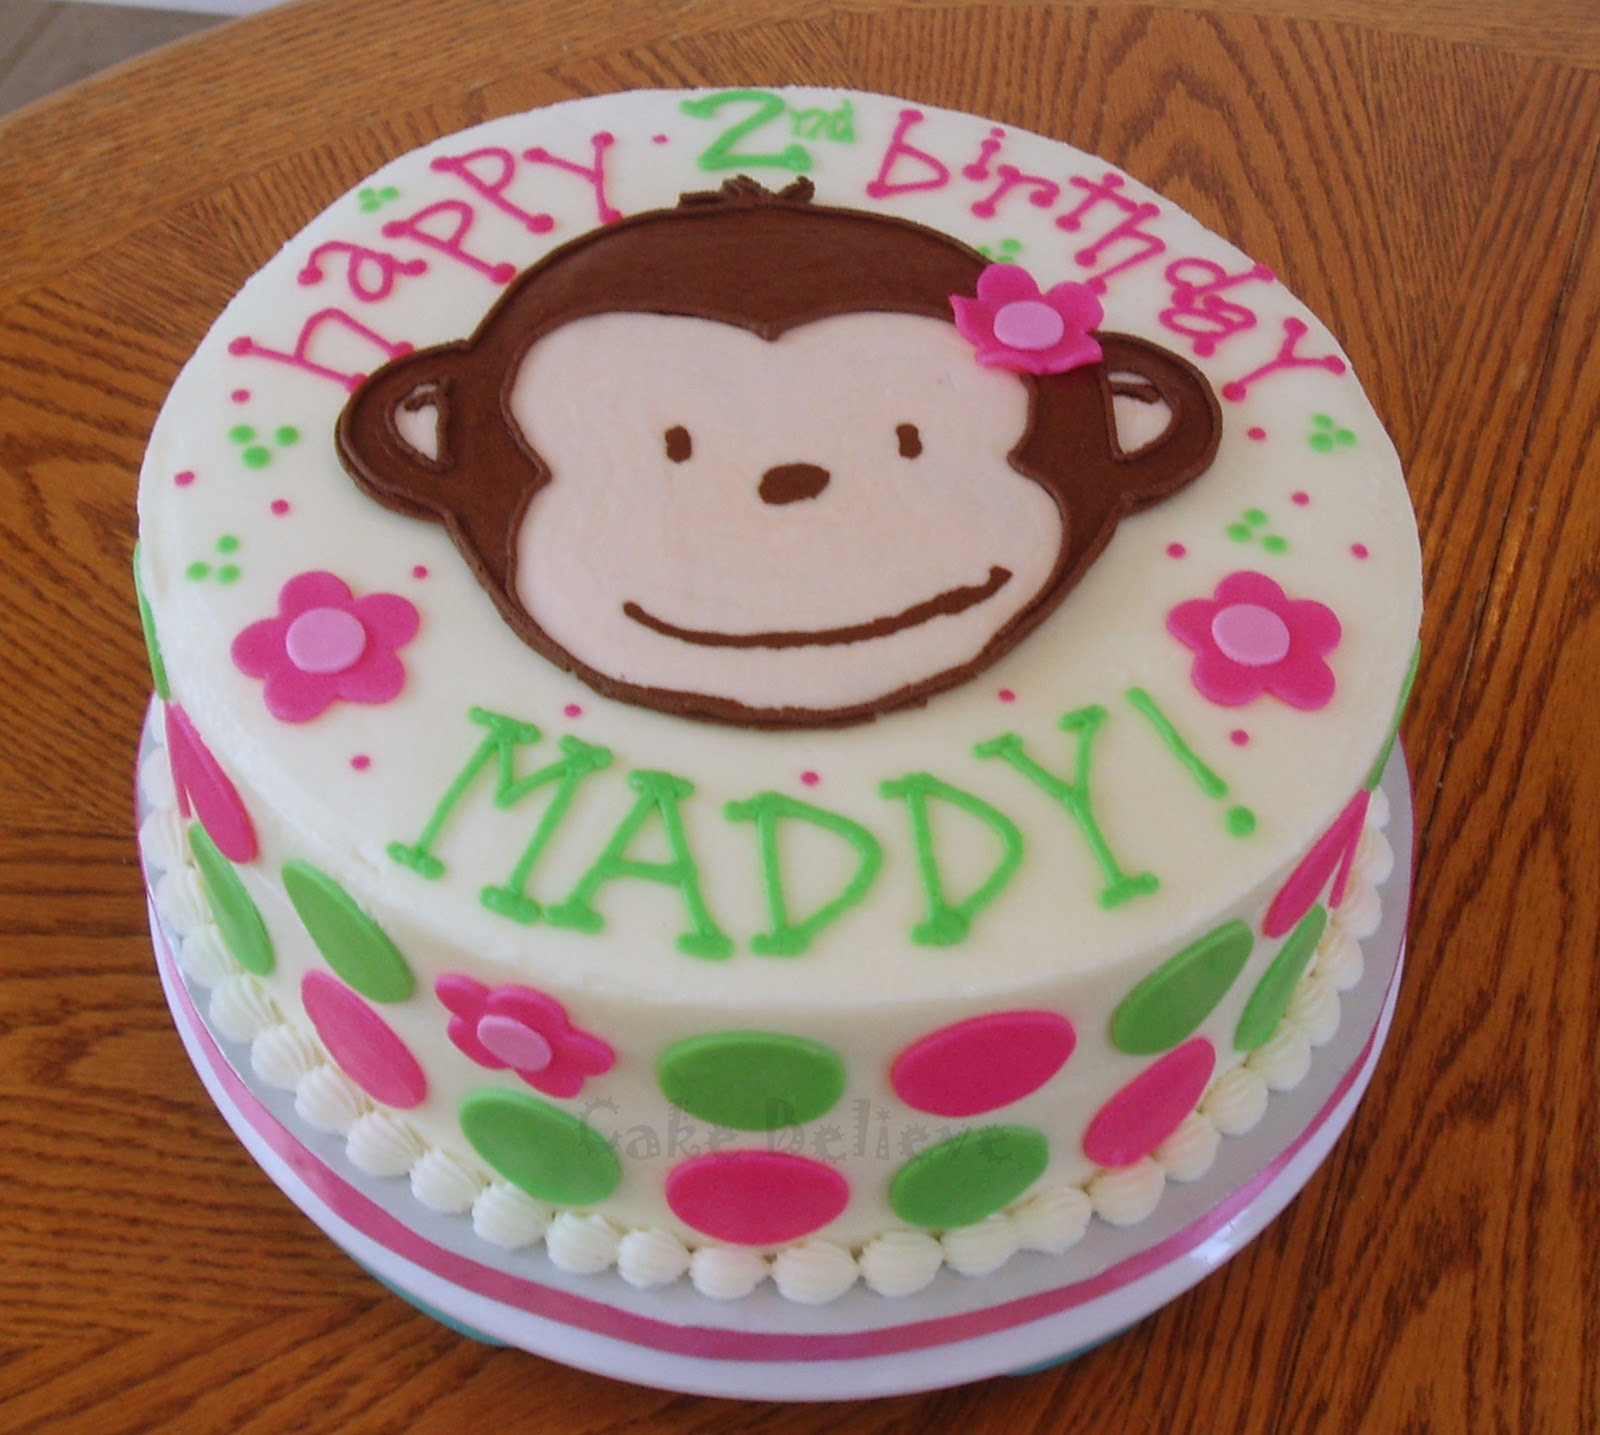 Cake is iced in buttercream with a FBCT monkey face and fondant ...